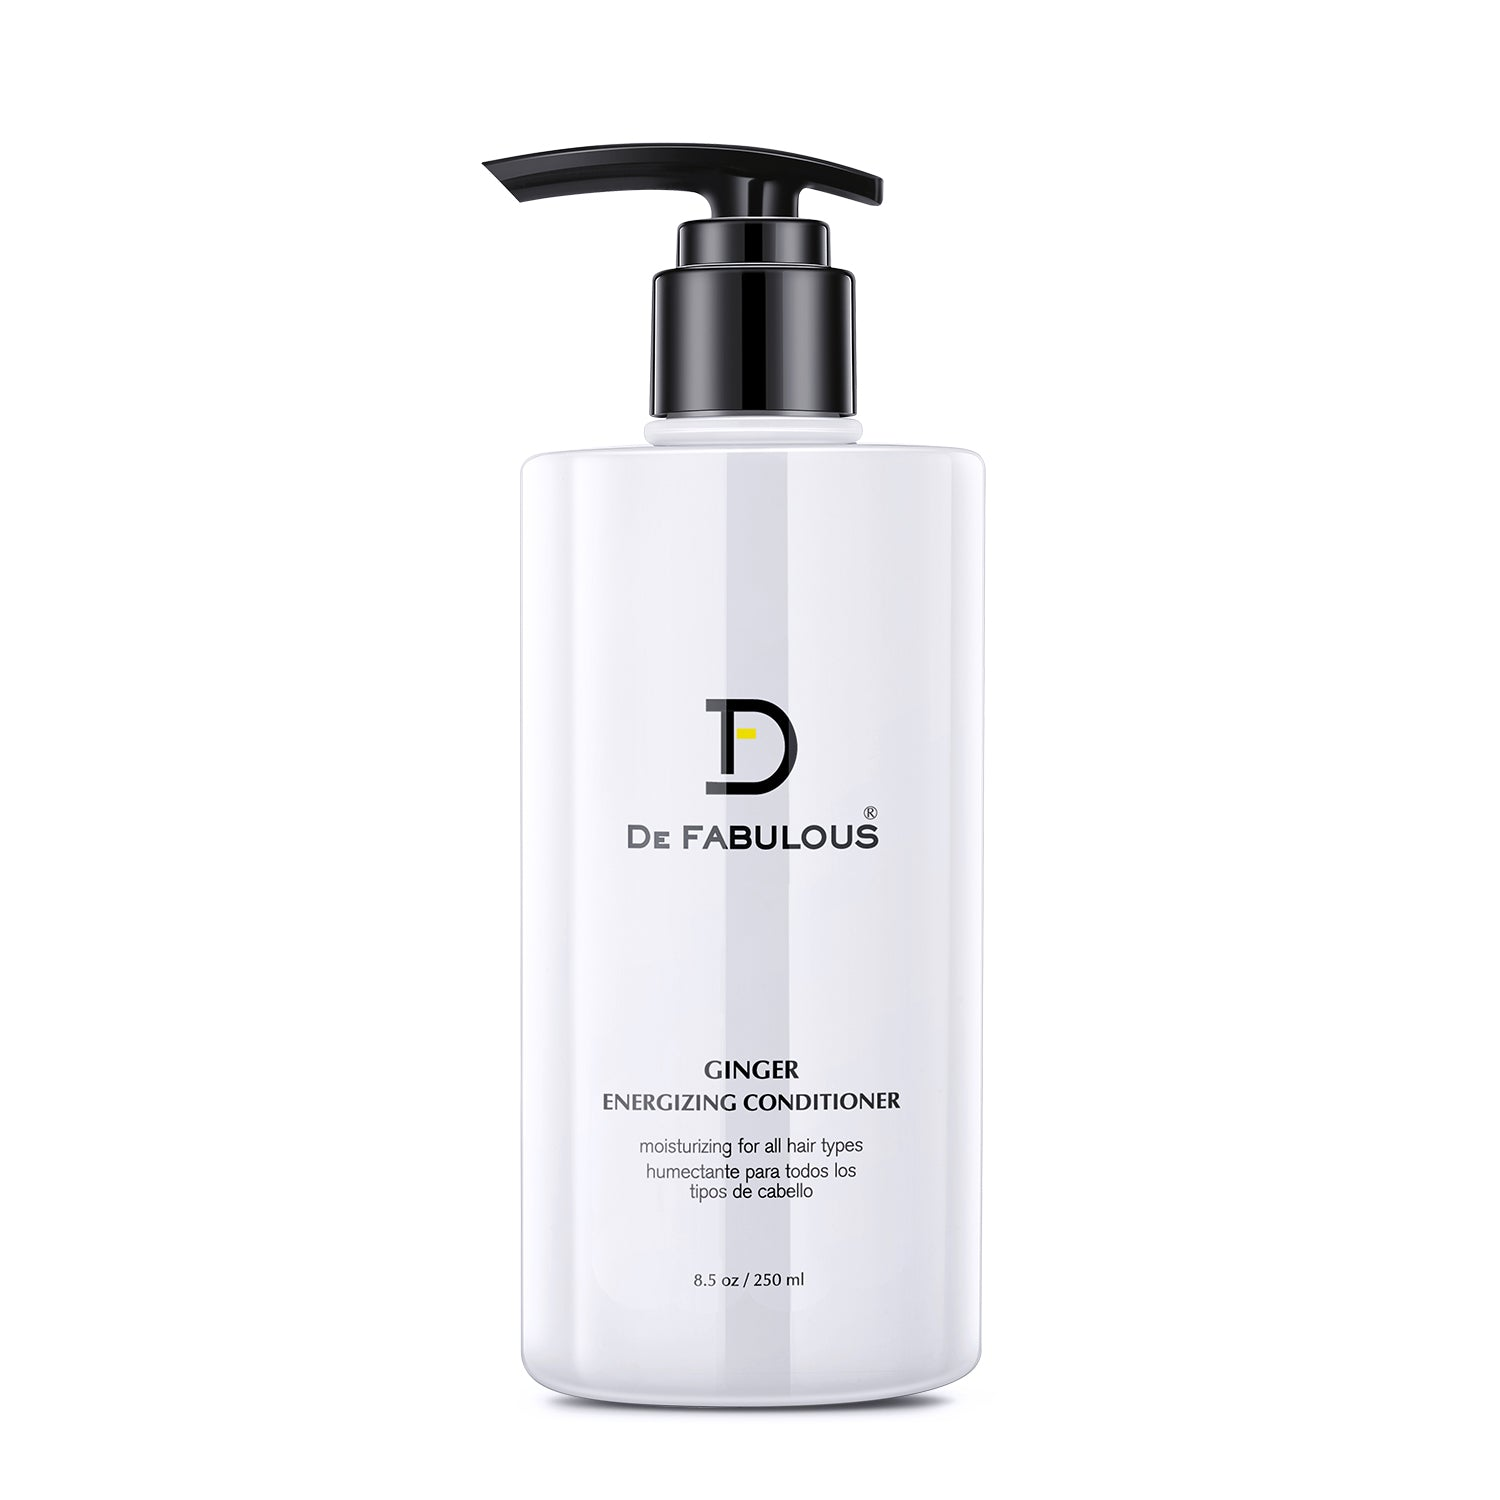 De Fabulous Ginger Energizing Conditioner 250ml